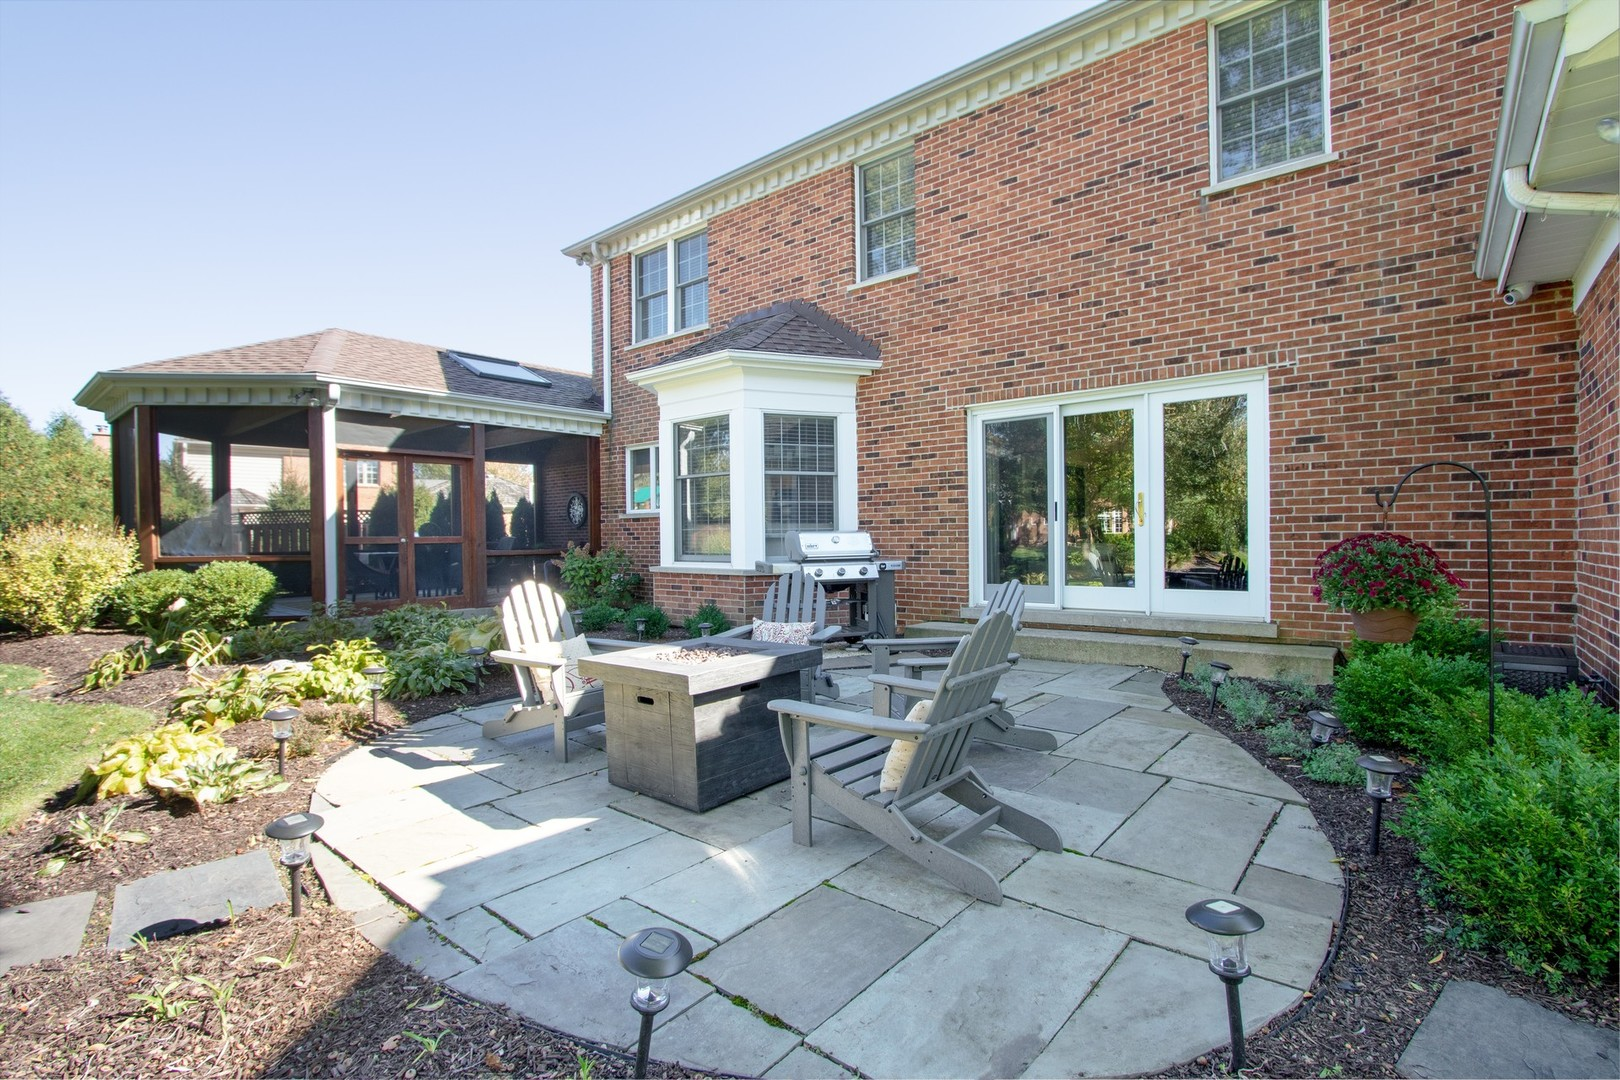 130 West Blackthorn, Lake Forest, Illinois, 60045